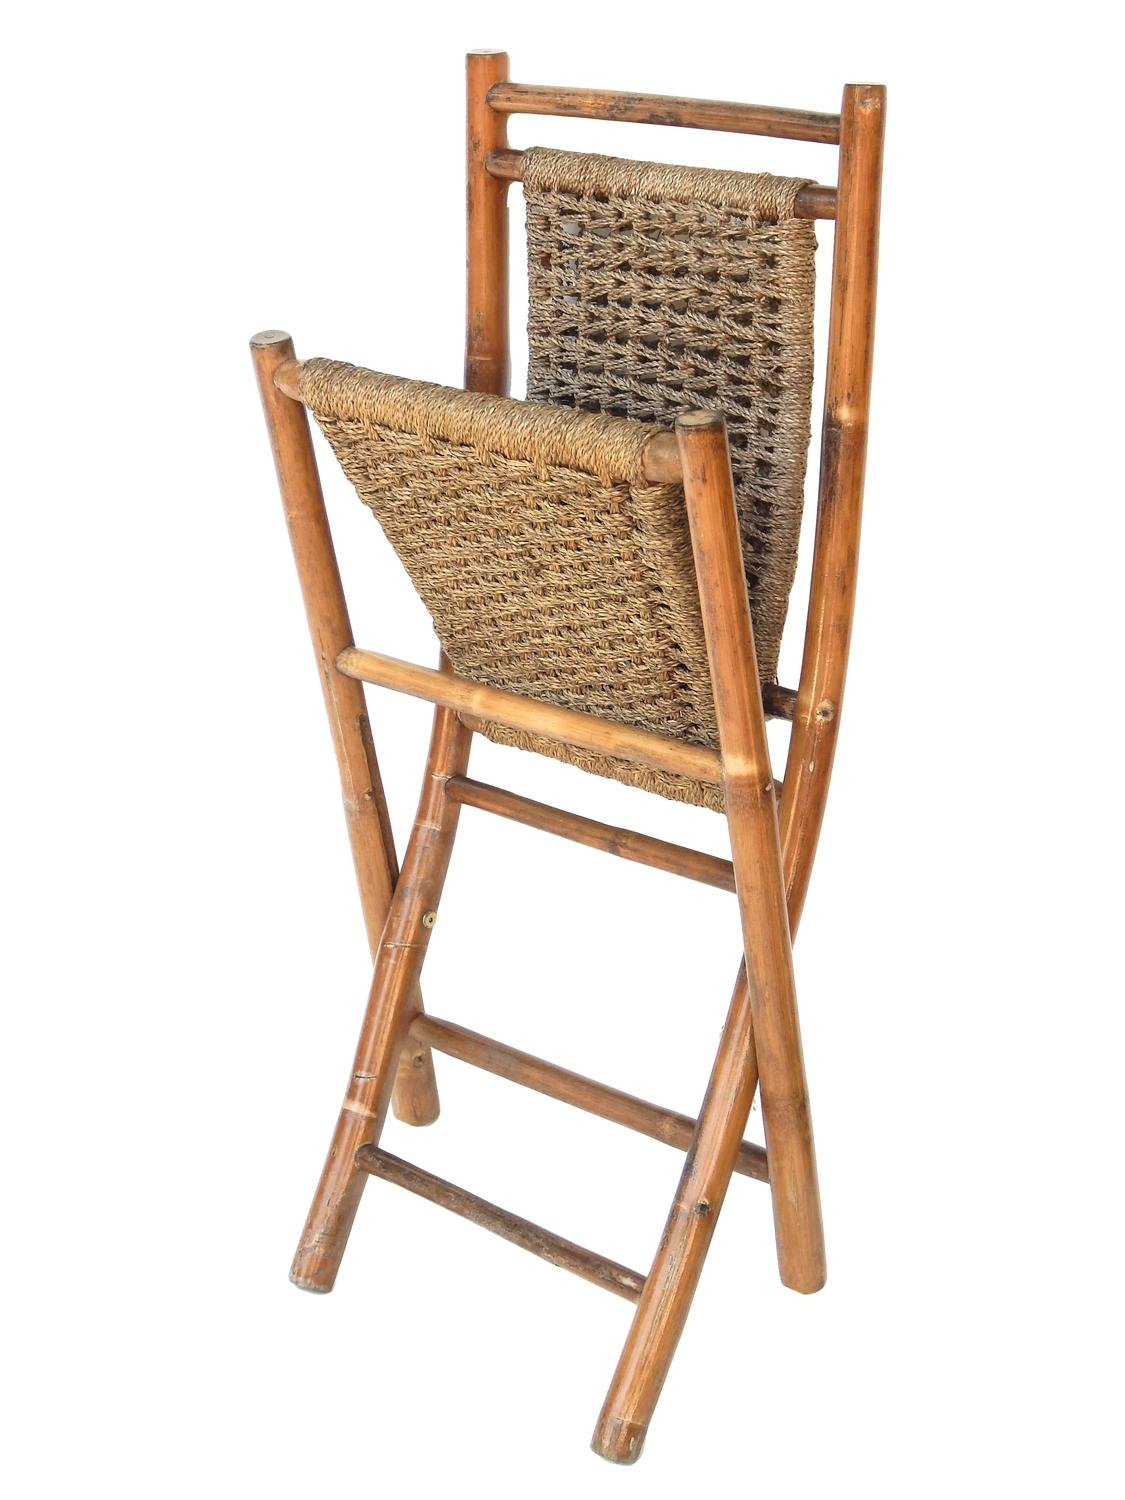 bamboo chairs for sale hanging chair cad block free folding and seagrass at 1stdibs